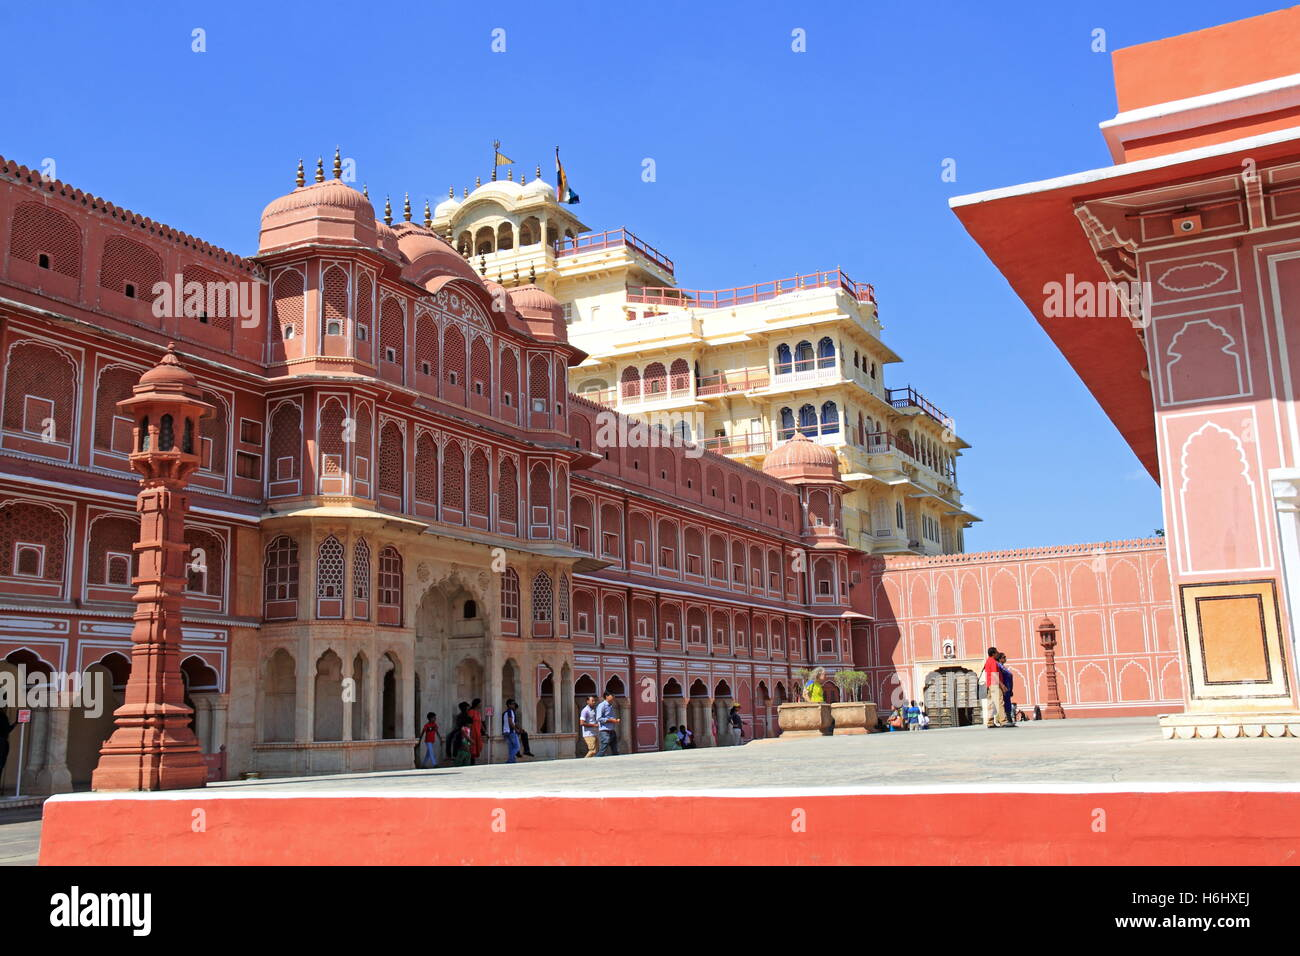 Riddhi-Siddhi Pol and Chandra Mahal, City Palace, Jaipur, Rajasthan, India, Indian subcontinent, South Asia Stock Photo